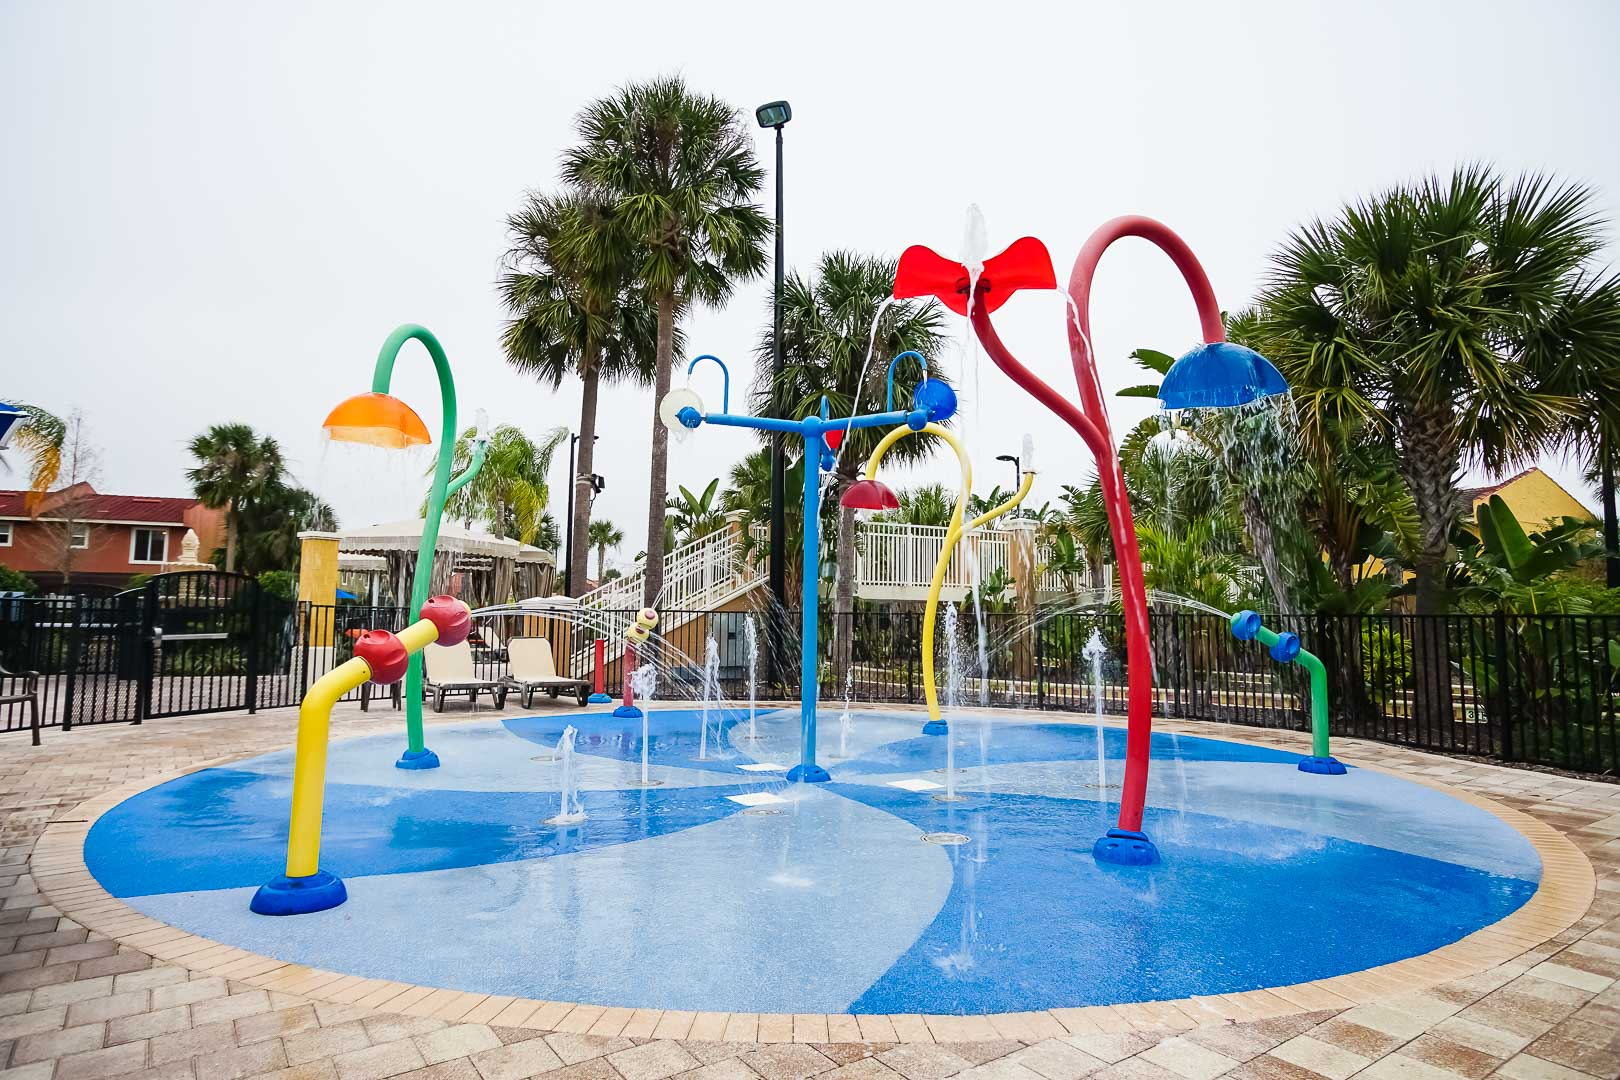 A colorful kids play area at VRI's Fantasy World Resort in Florida.